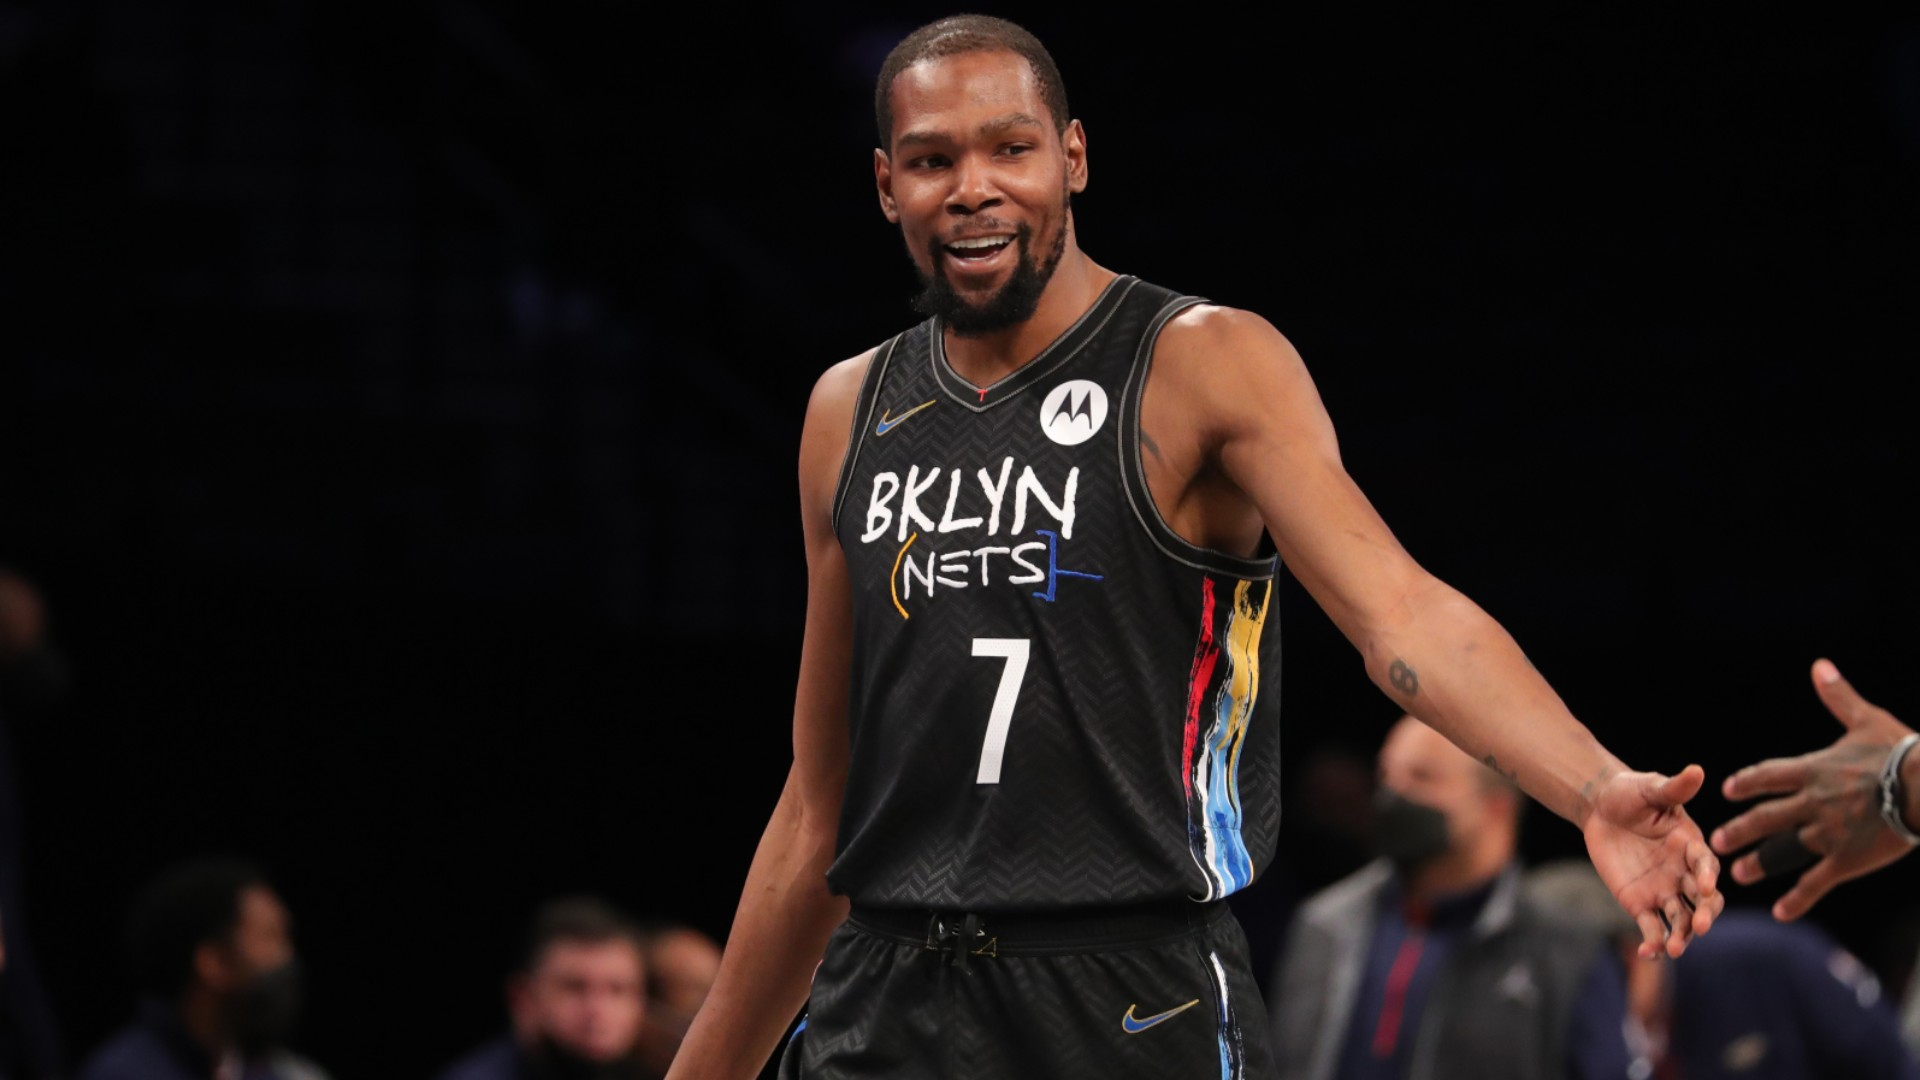 Kevin Durant reacted to his return for the Brooklyn Nets on Wednesday, which resulted in a win over the New Orleans Pelicans.